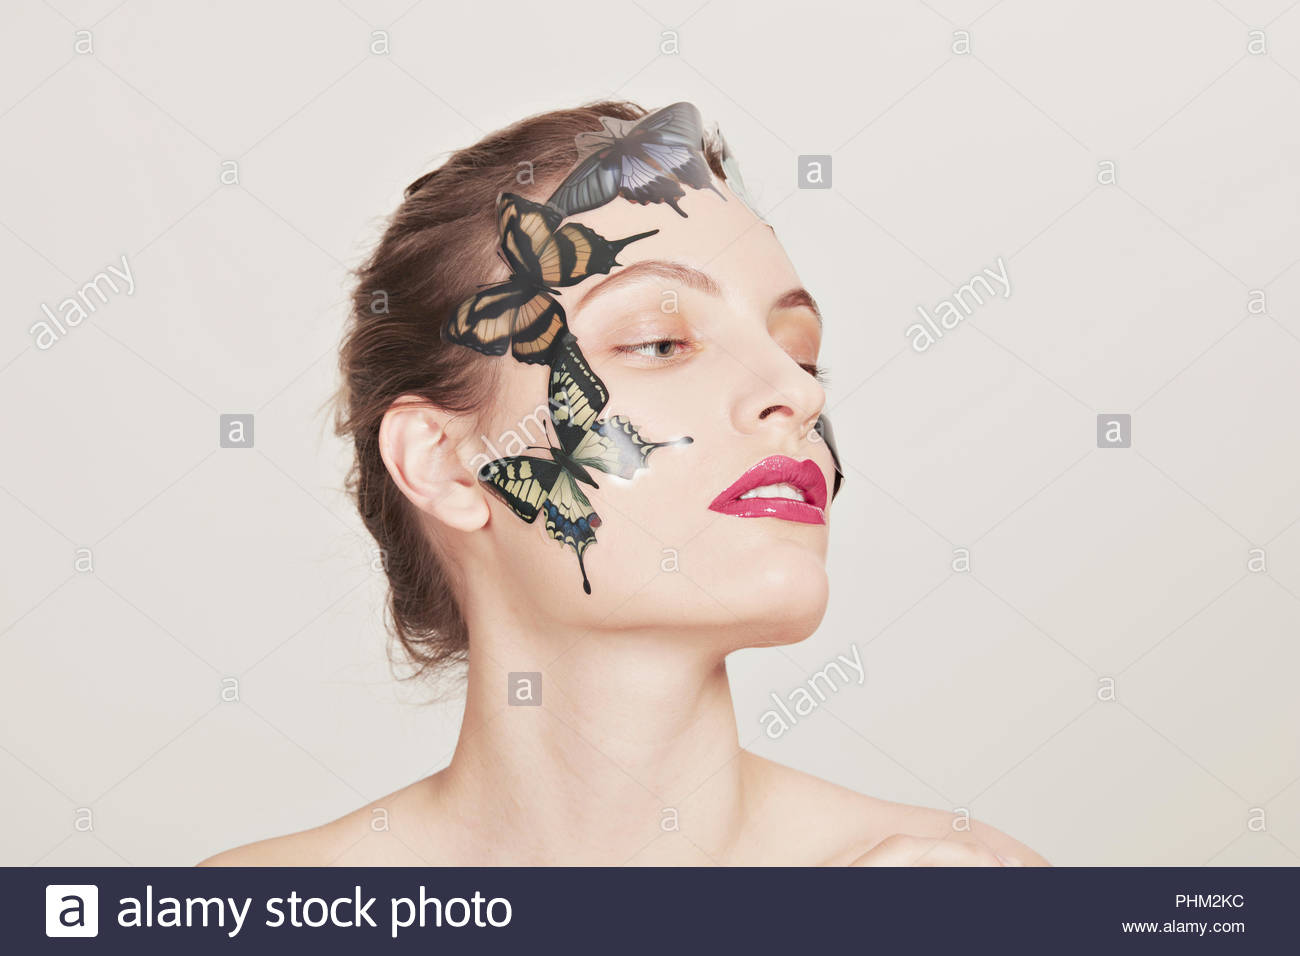 Young woman with butterfly stickers - Stock Image